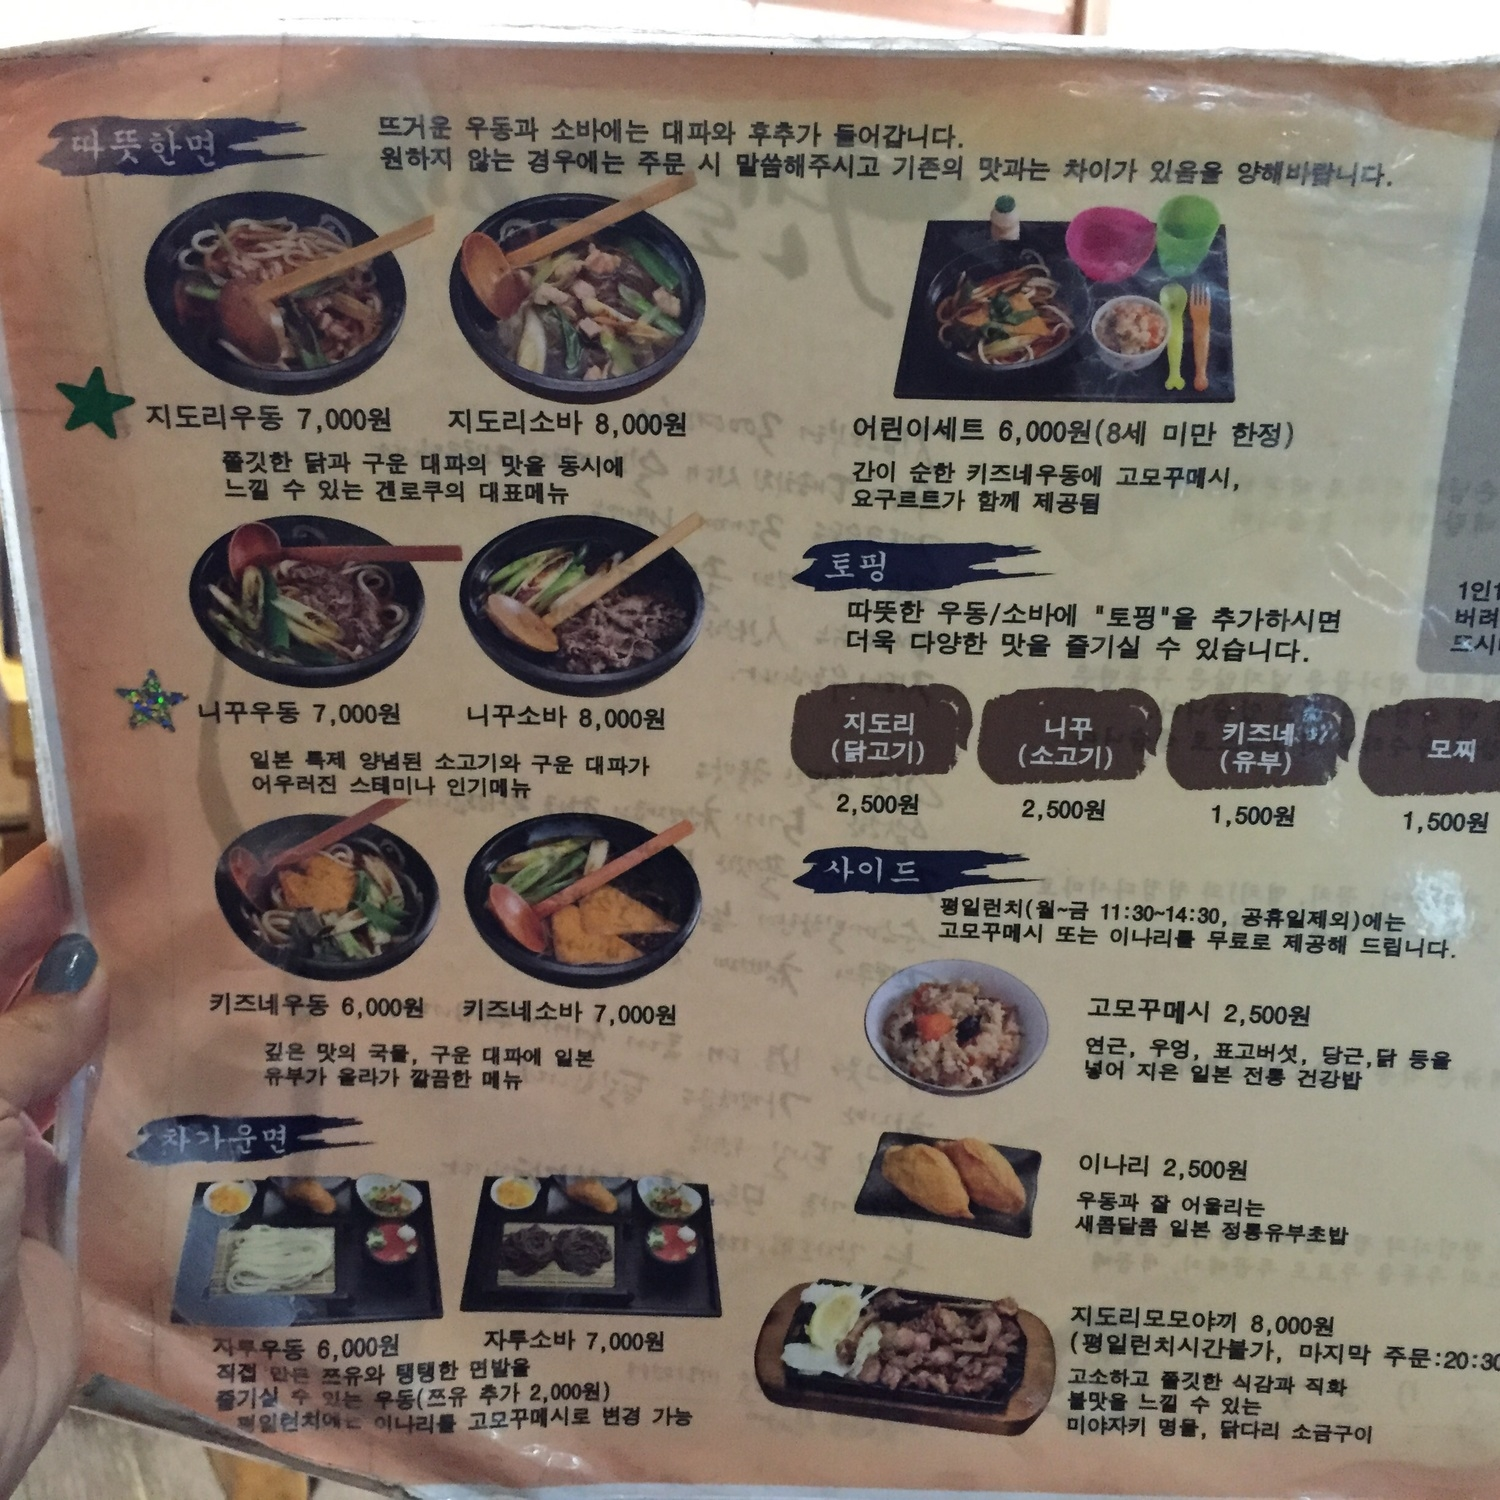 Their menu. Has the 3 different toppings with 2 different noodle options for the hot soups. A cold udong and cold soba option, a kids set, additional toppings you can add onto your soup, a side order of Japanese fried rice, Japanese 이나리 스시 (rice filled yooboo - the seasonedfried tofu), and a plate of grilled chicken. All prices are very reasonable.